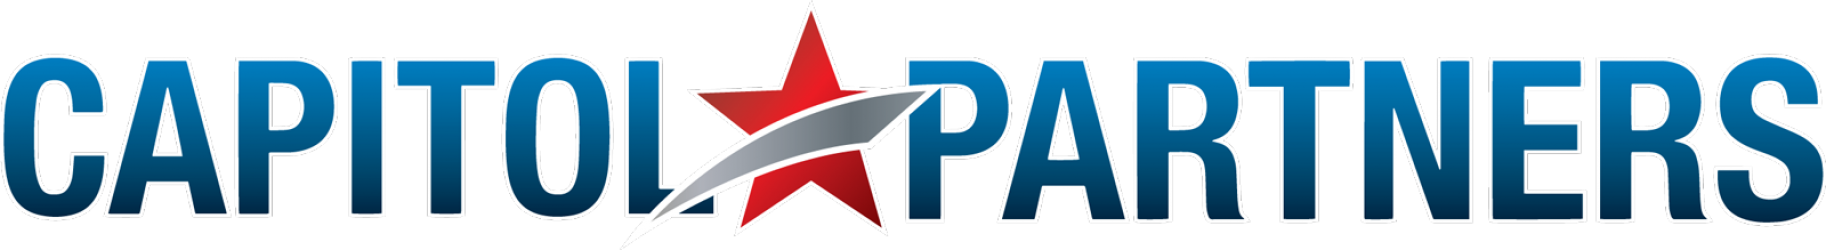 cropped-capitol_partners_ohio_logo.png